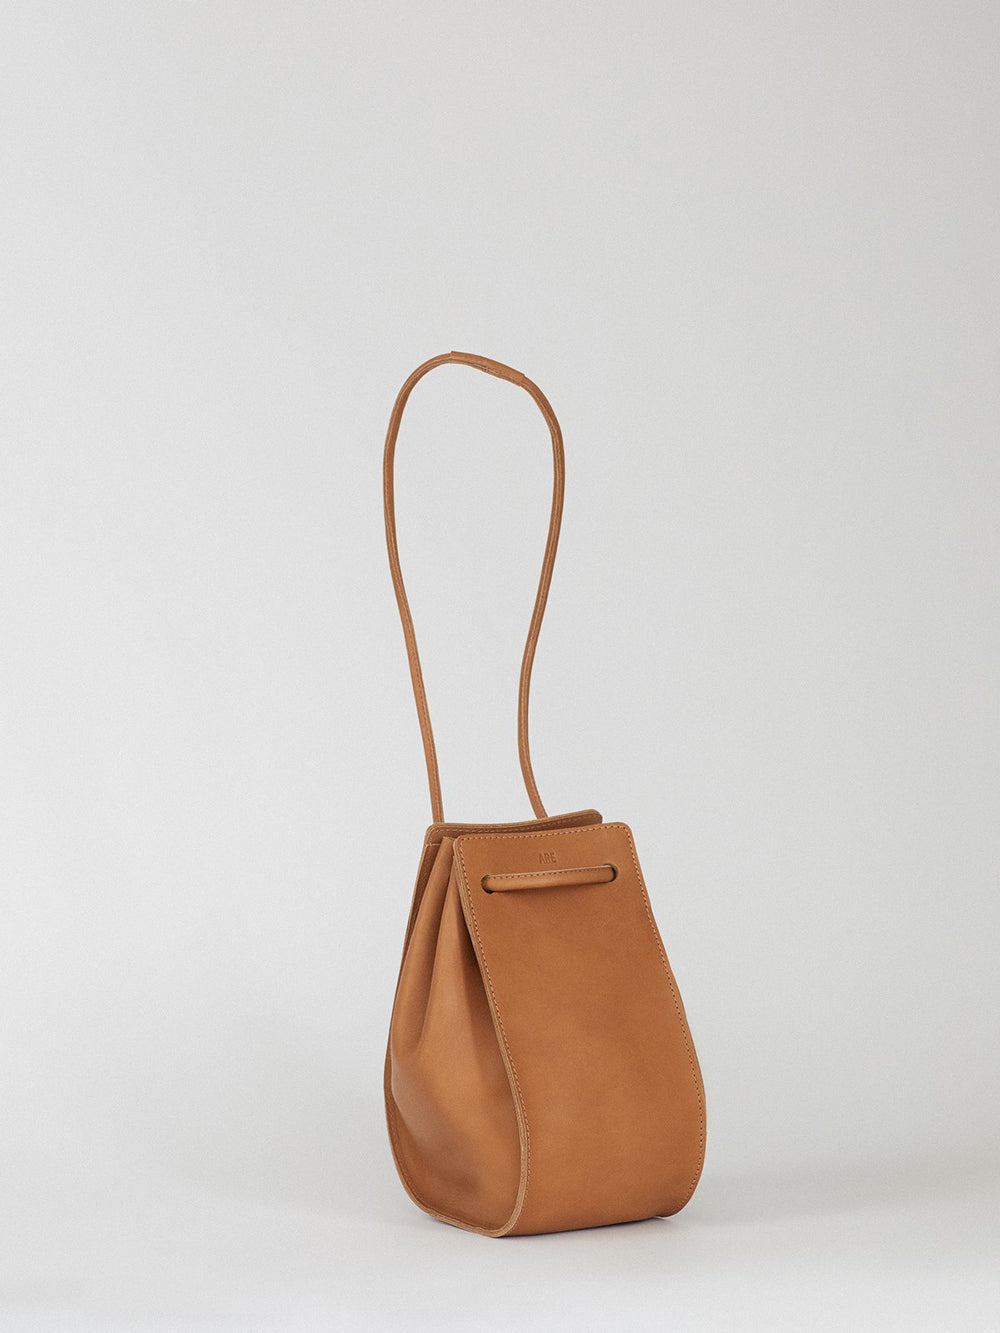 are studio camber bag in camel